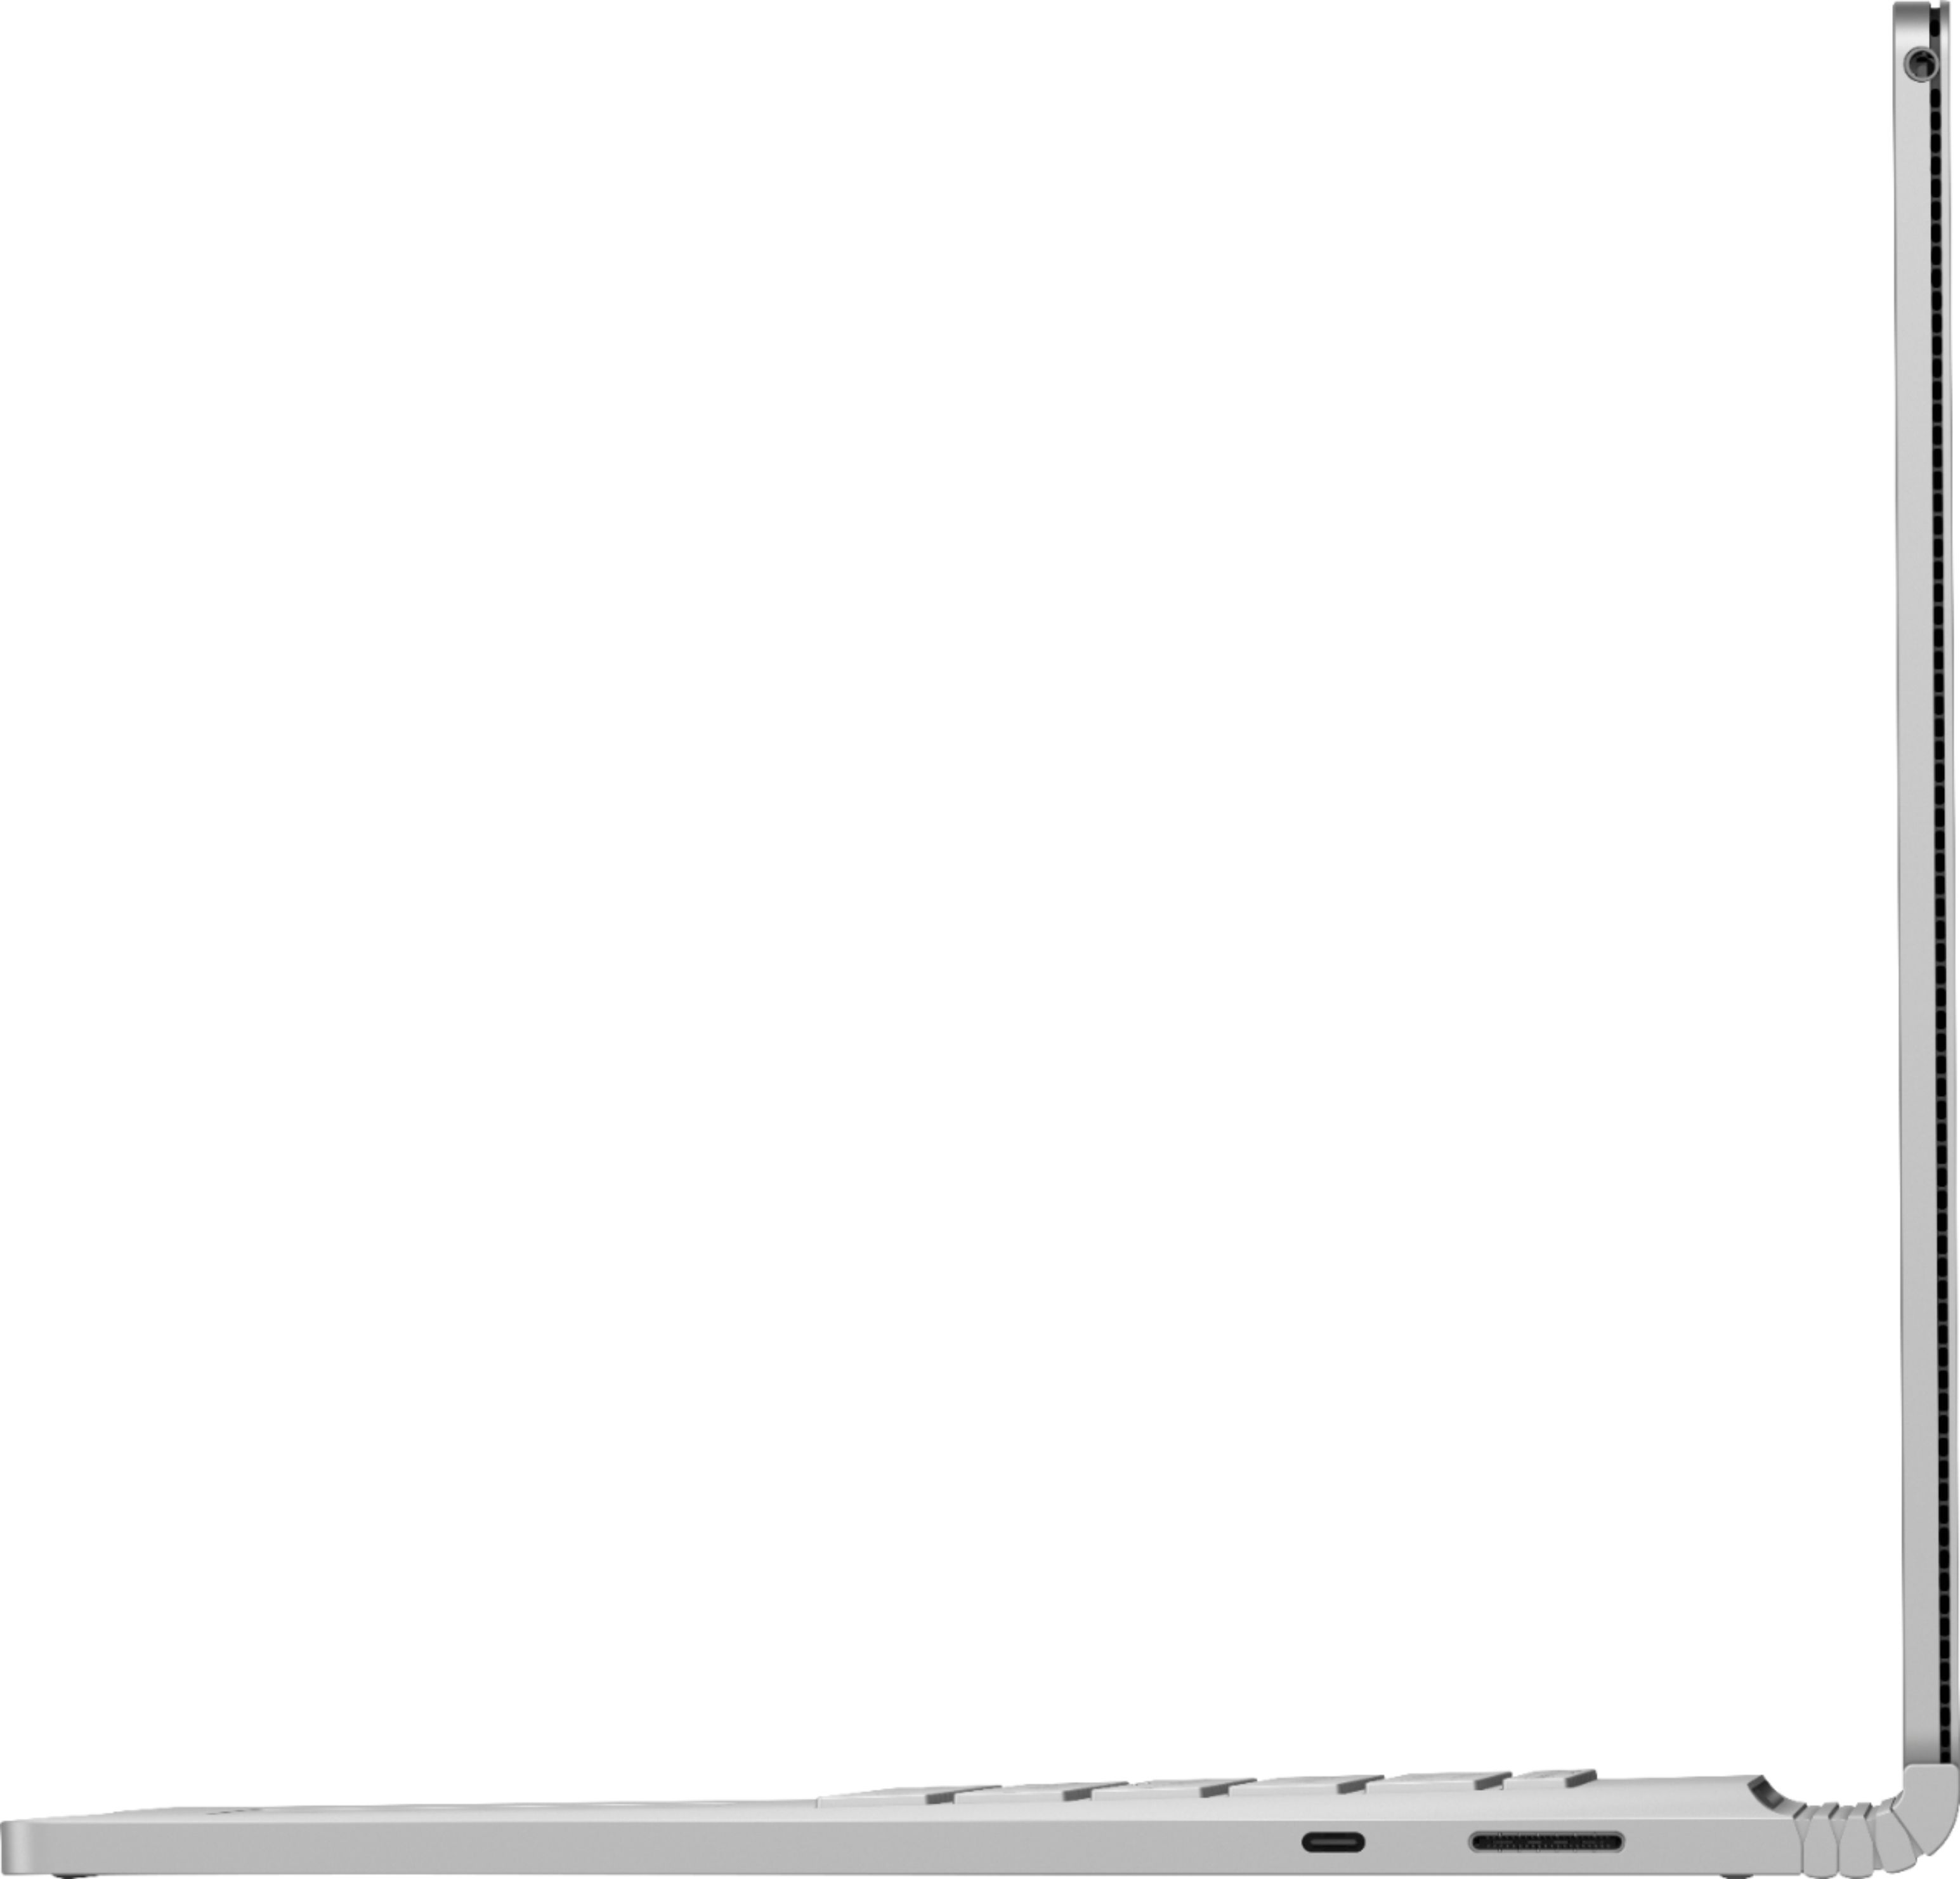 """Alt View Zoom 13. Microsoft - Surface Book 3 15"""" Touch-Screen PixelSense™ - 2-in-1 Laptop - Intel Core i7 - 32GB Memory - 1TB SSD - Platinum."""